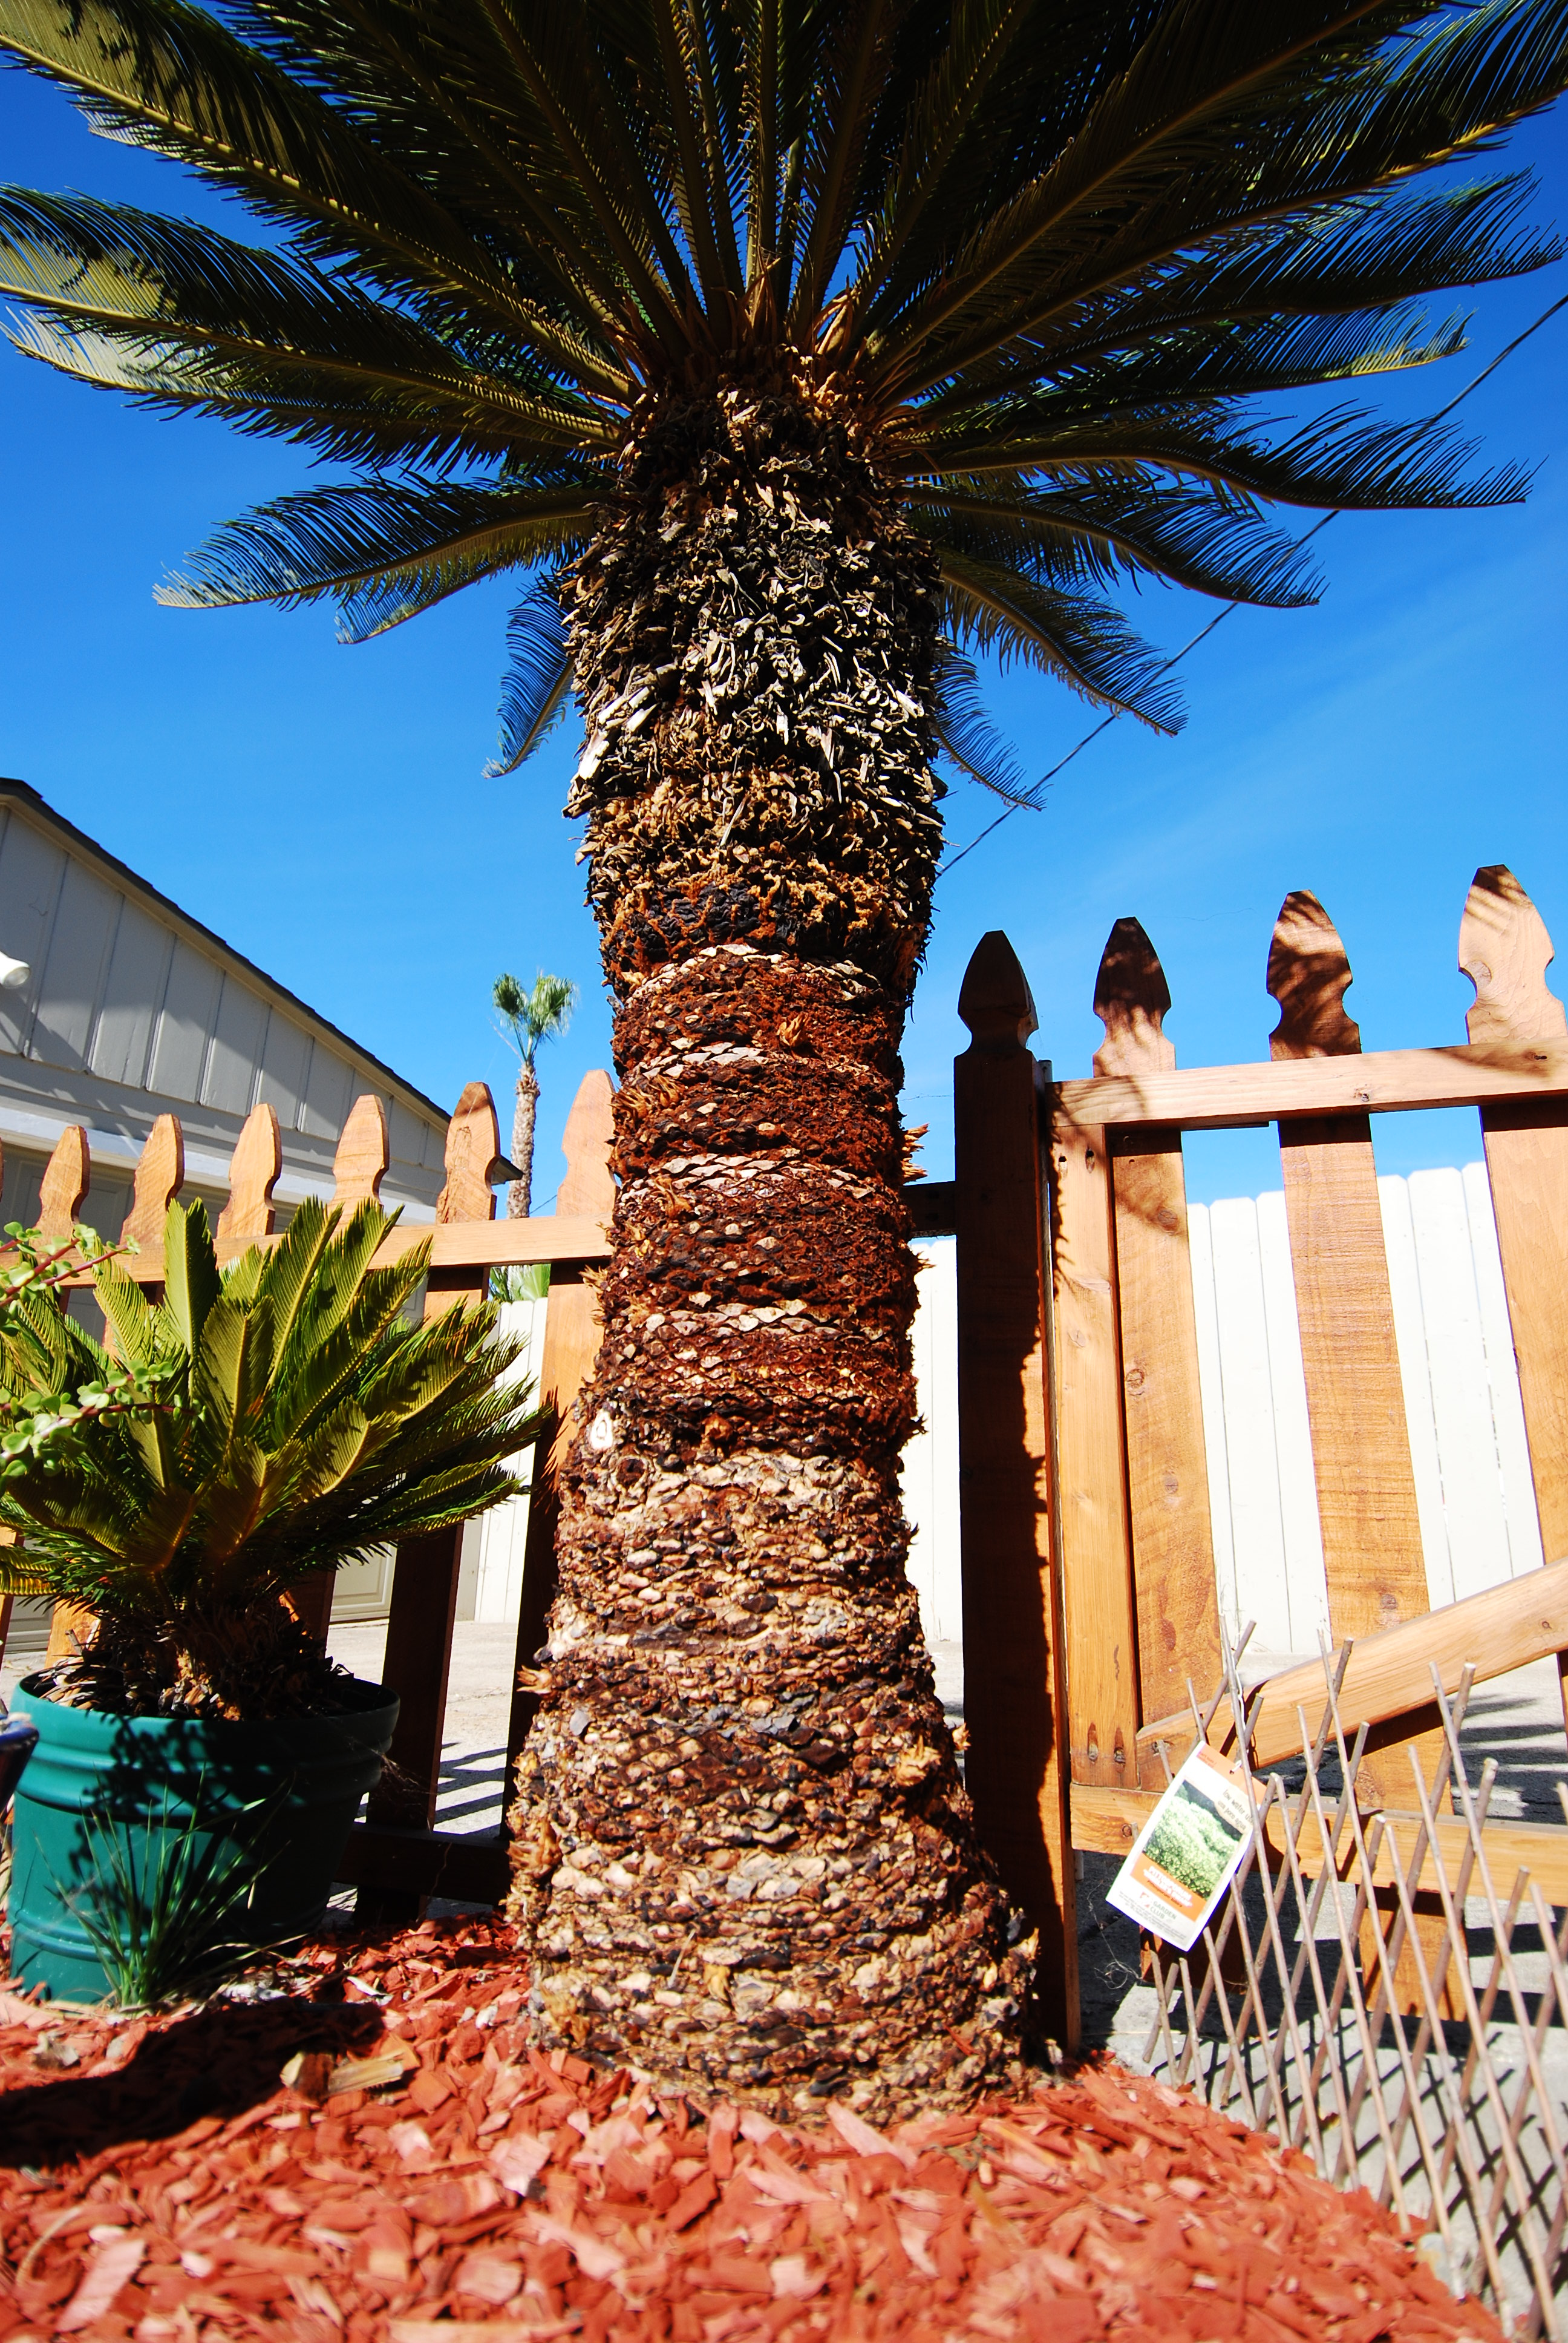 The Sago Palm Ancient Beautiful And Actively Trying To Kill Your